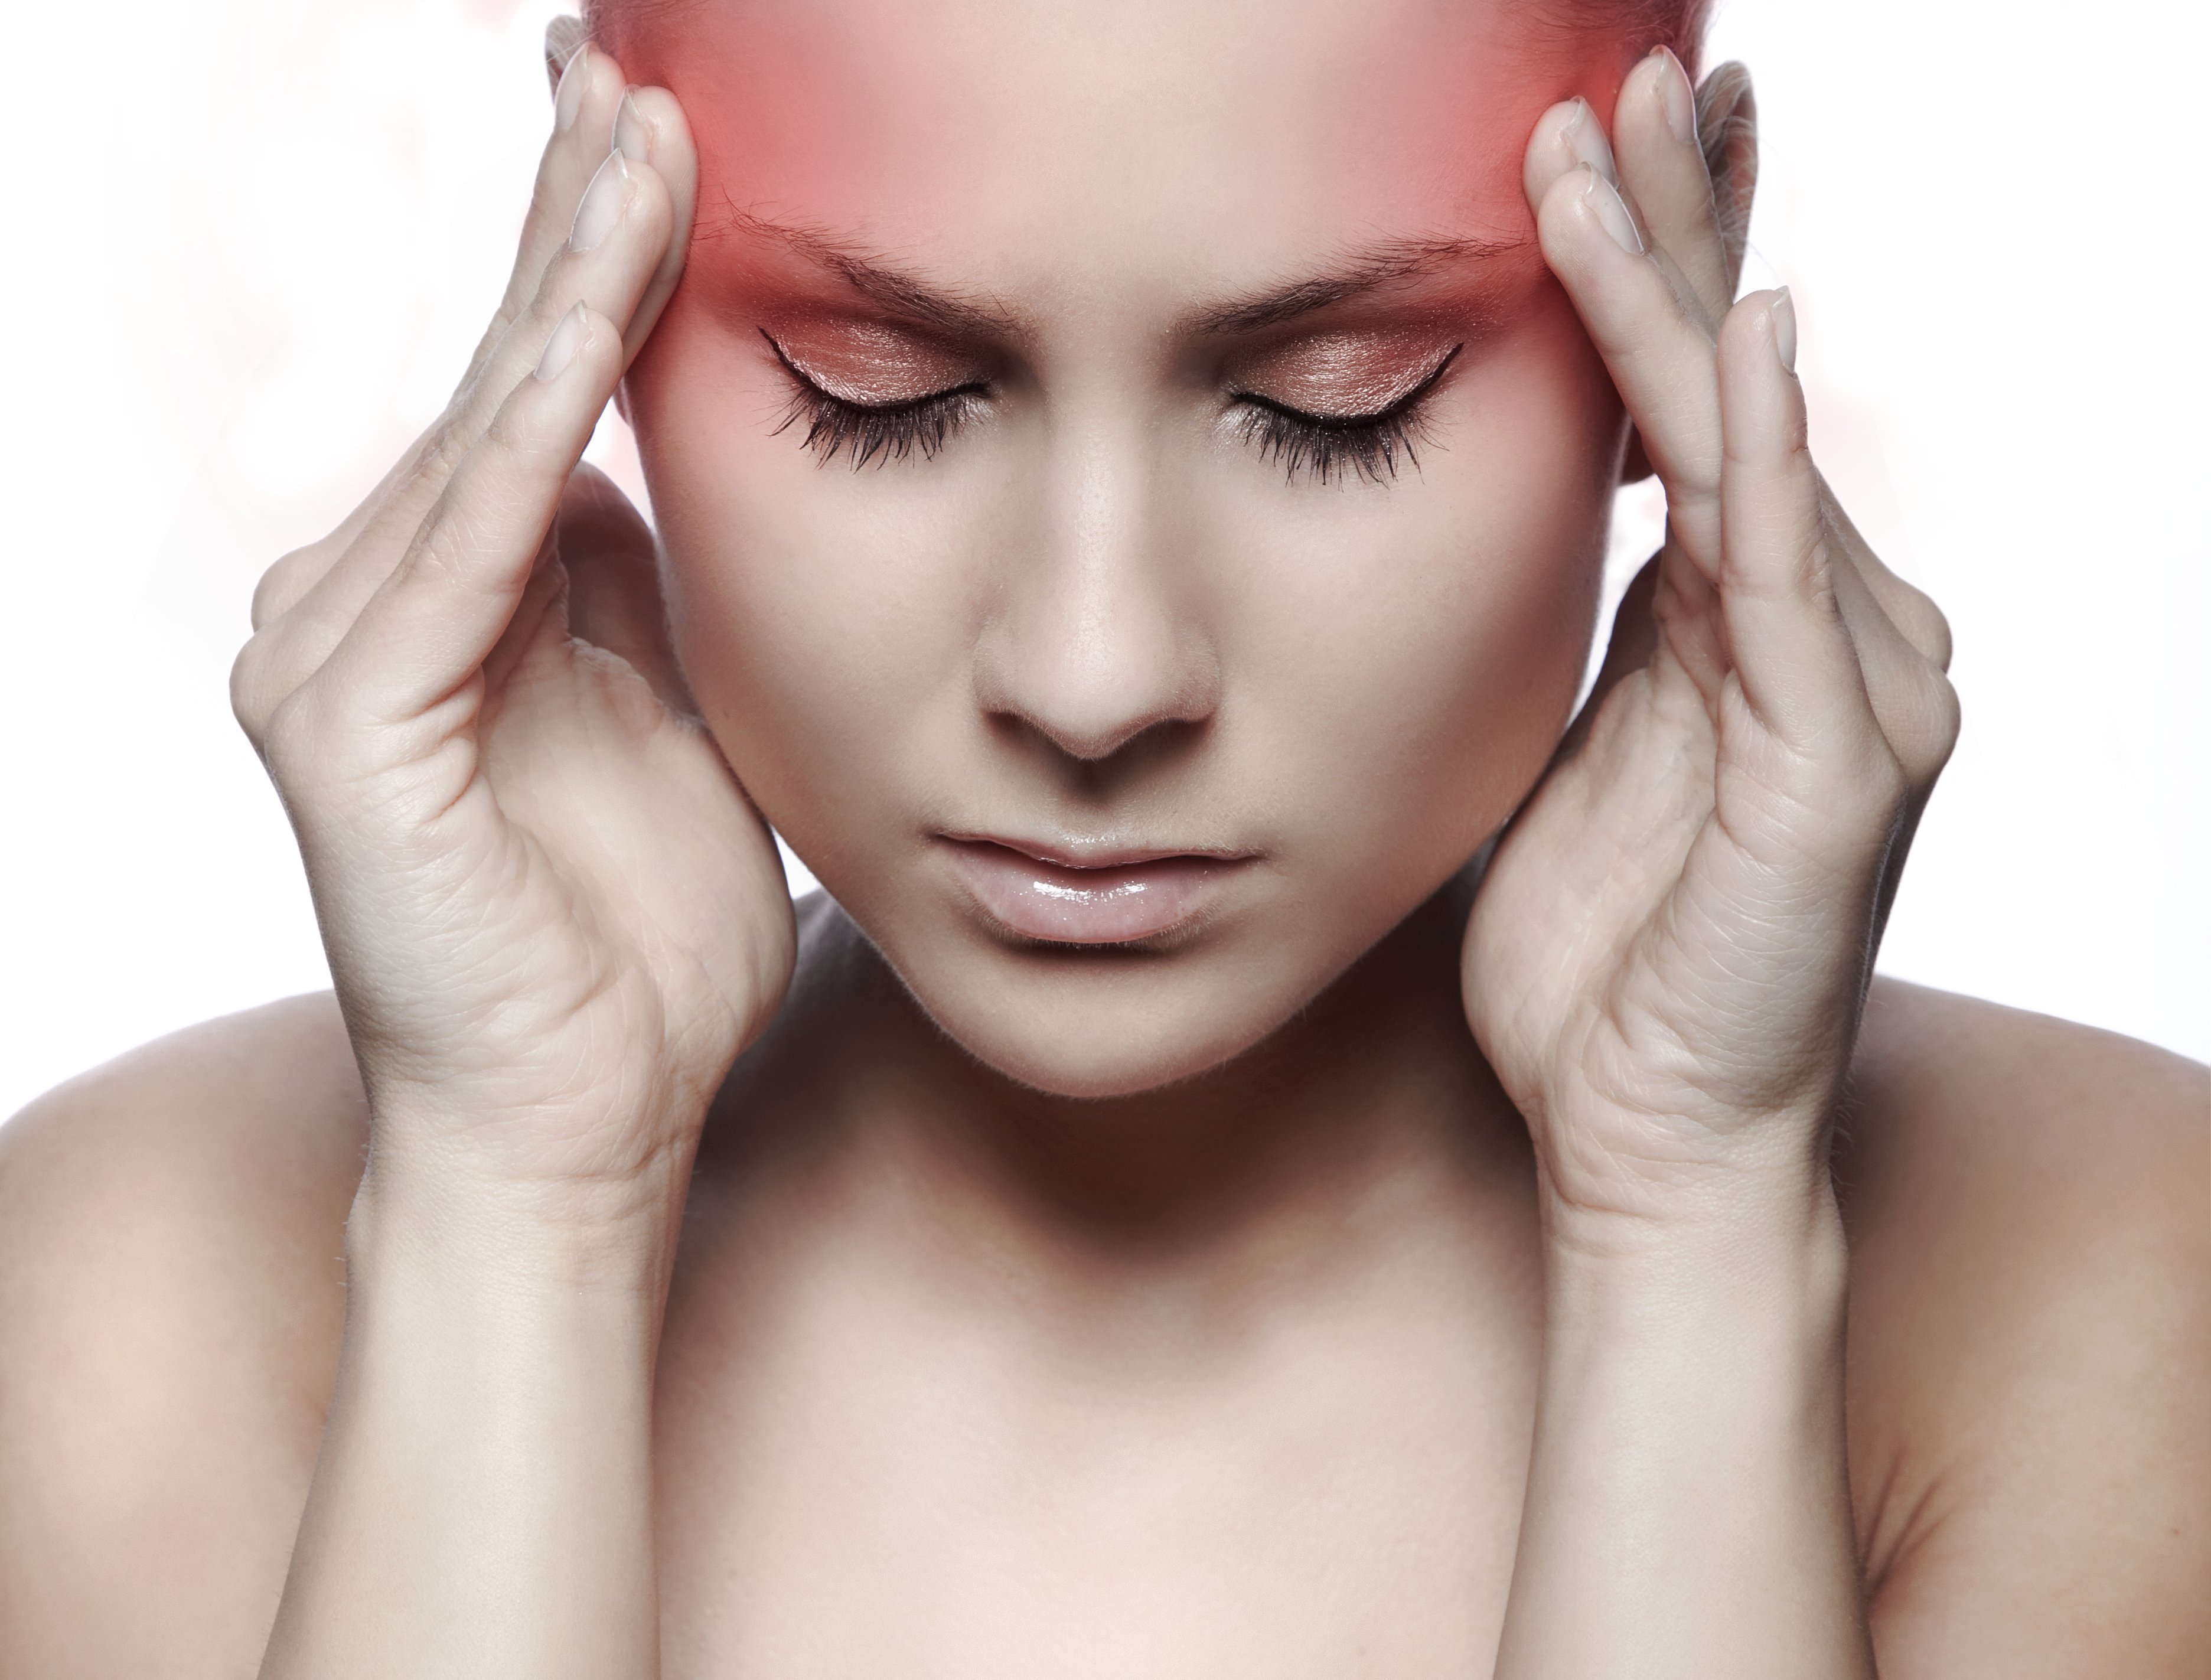 6 Foods That Will Help You Deal With Headaches